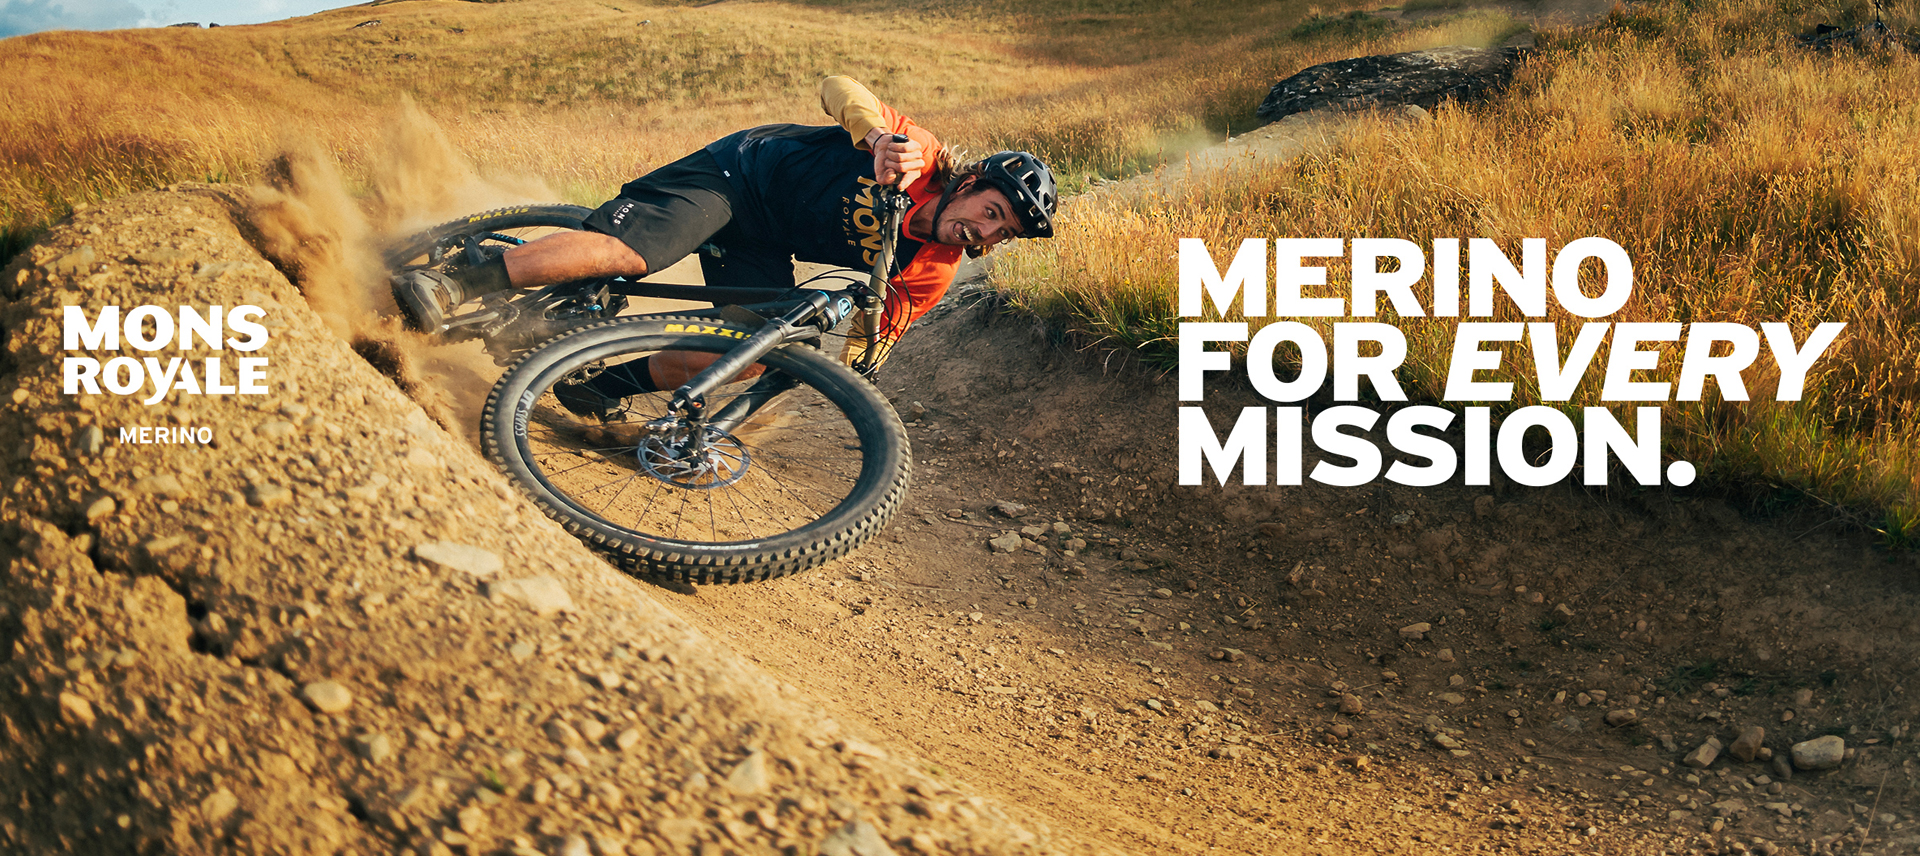 MERINO FOR EVERY MISSION